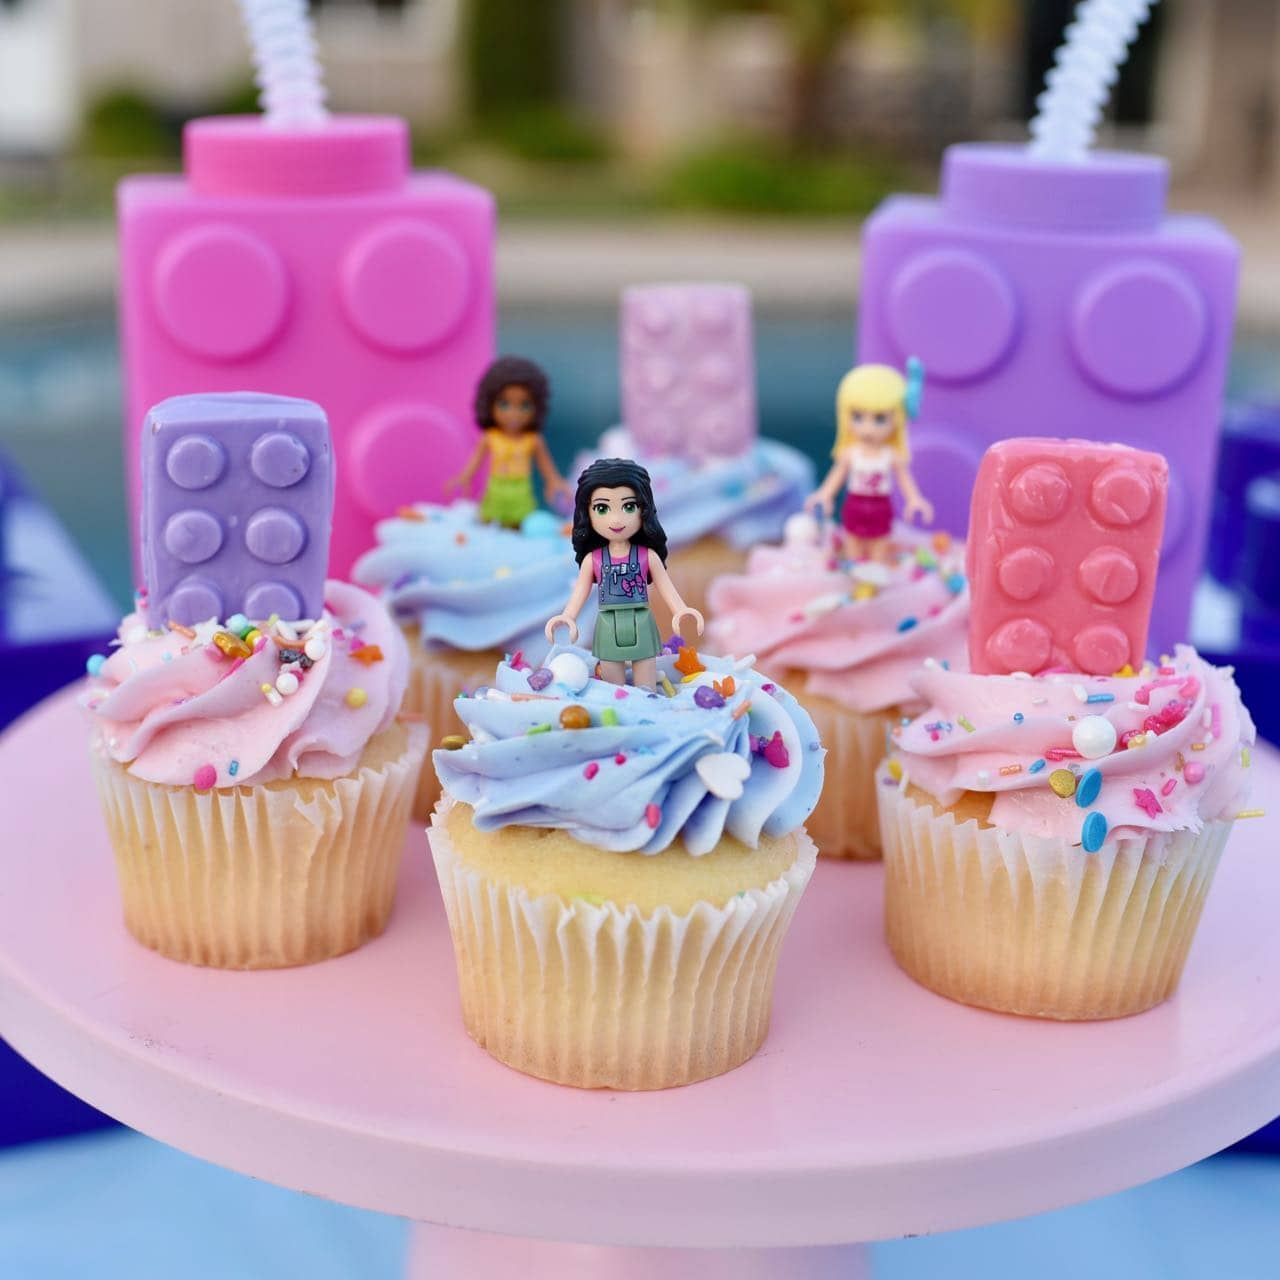 Awe Inspiring Lego Friends Party Poolside To Celebrate The End Of Summer Make Personalised Birthday Cards Paralily Jamesorg